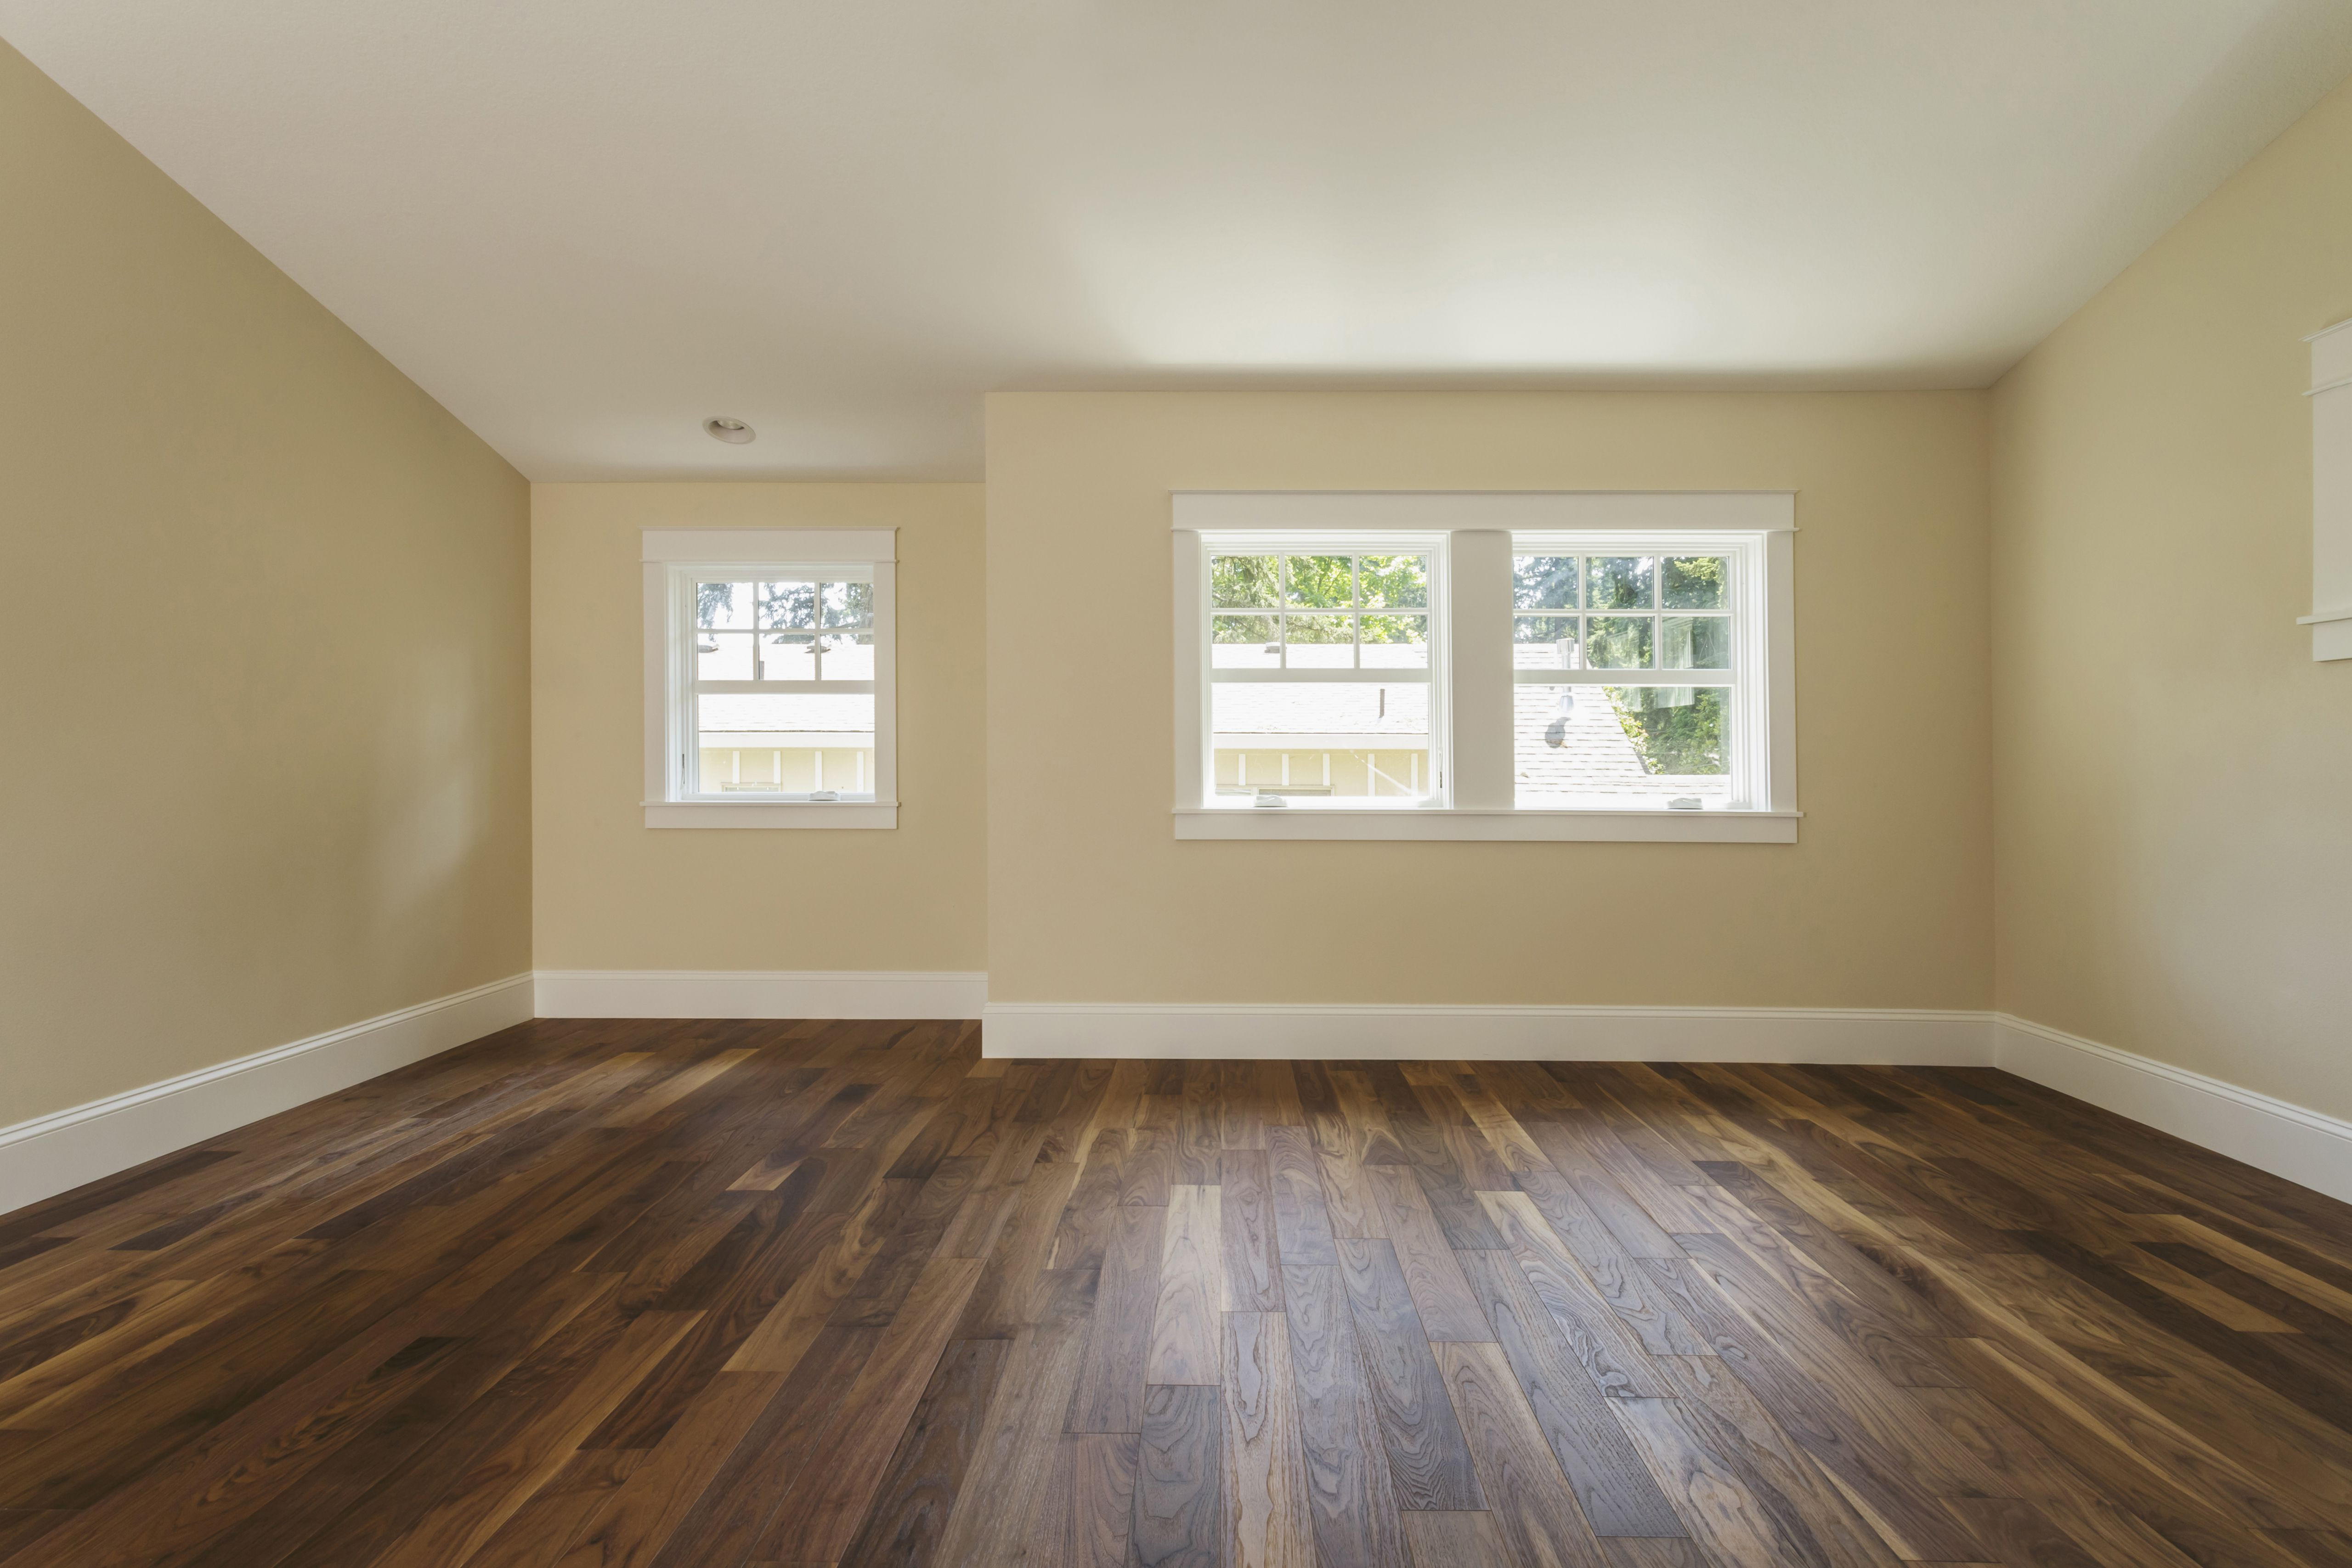 how to install hardwood flooring on walls of its easy and fast to install plank vinyl flooring in wooden floor in empty bedroom 482143001 588bd5f45f9b5874eebd56e9